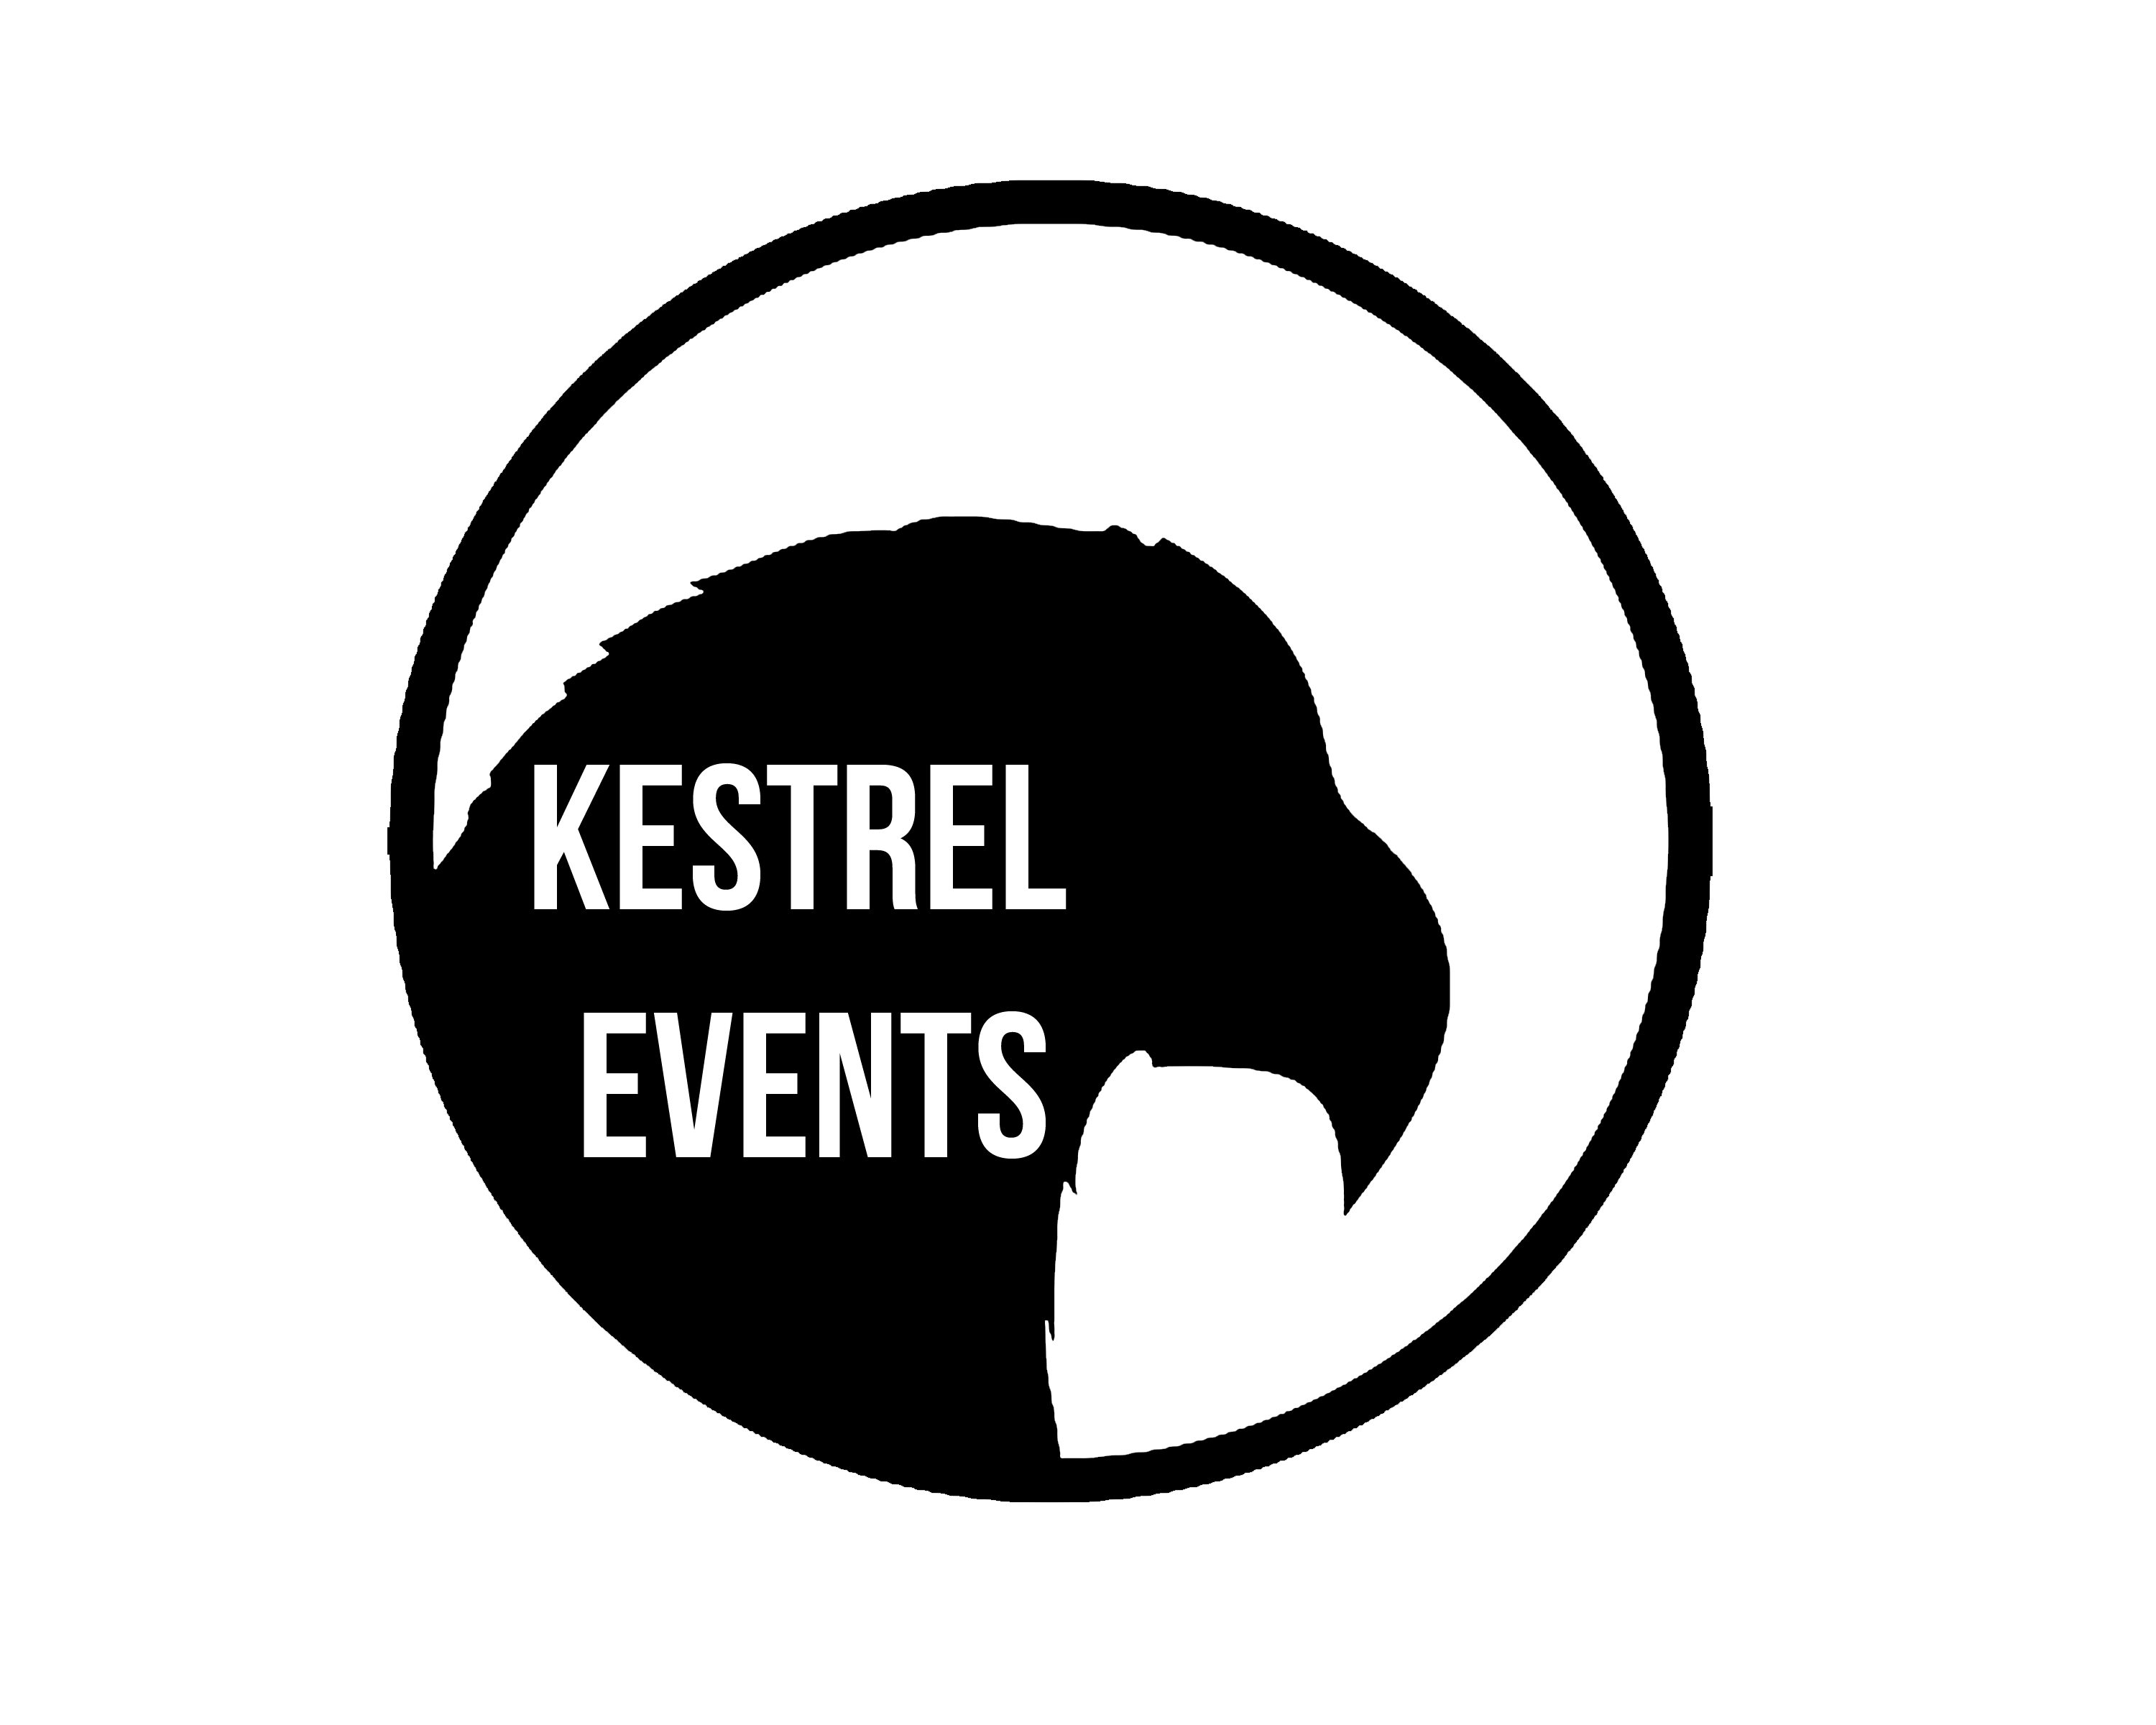 Kestrel Events